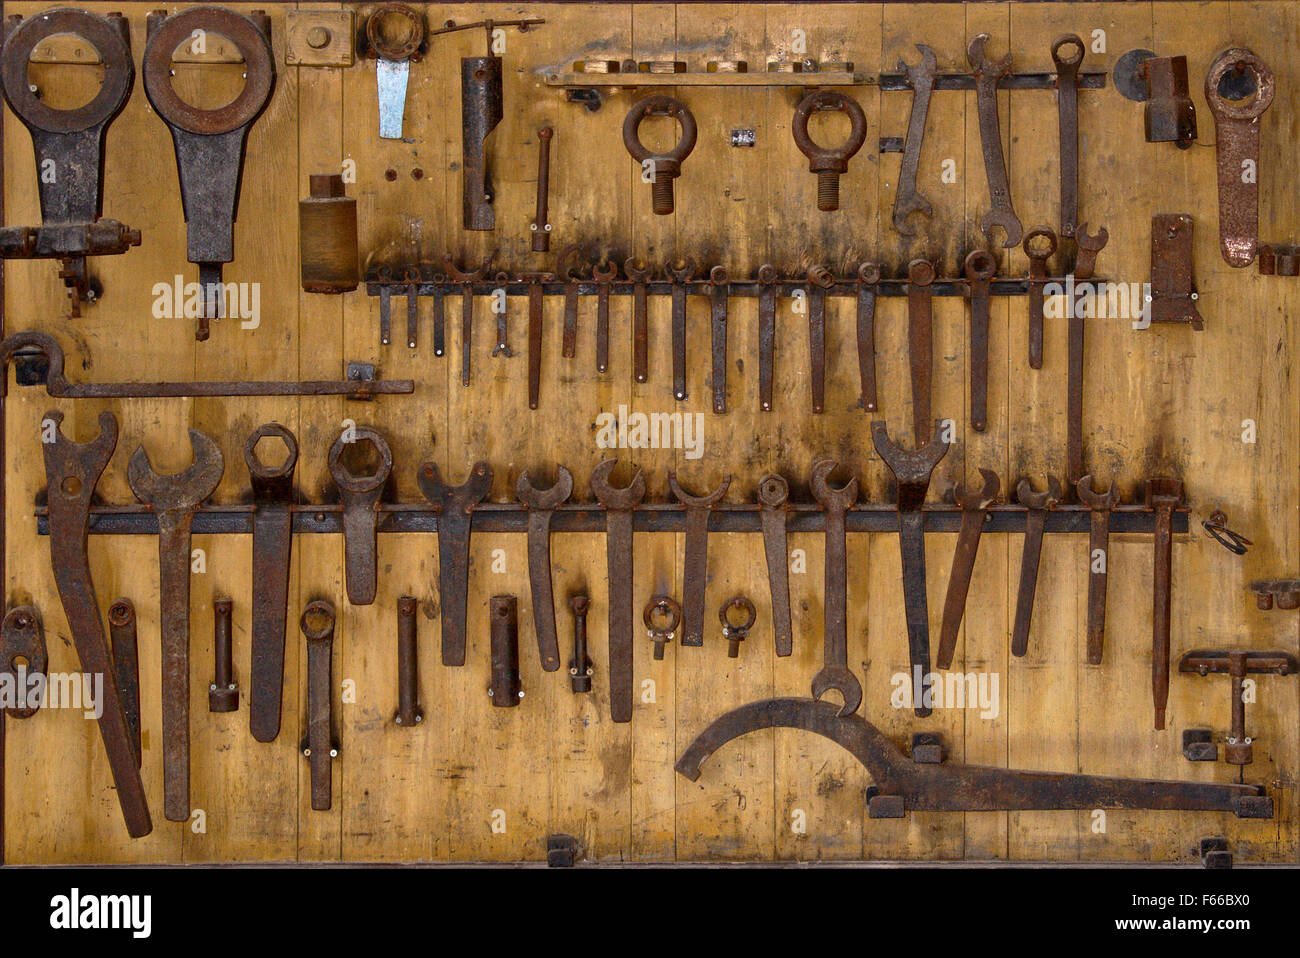 Rusty tool set from an old electricity plant - Stock Image